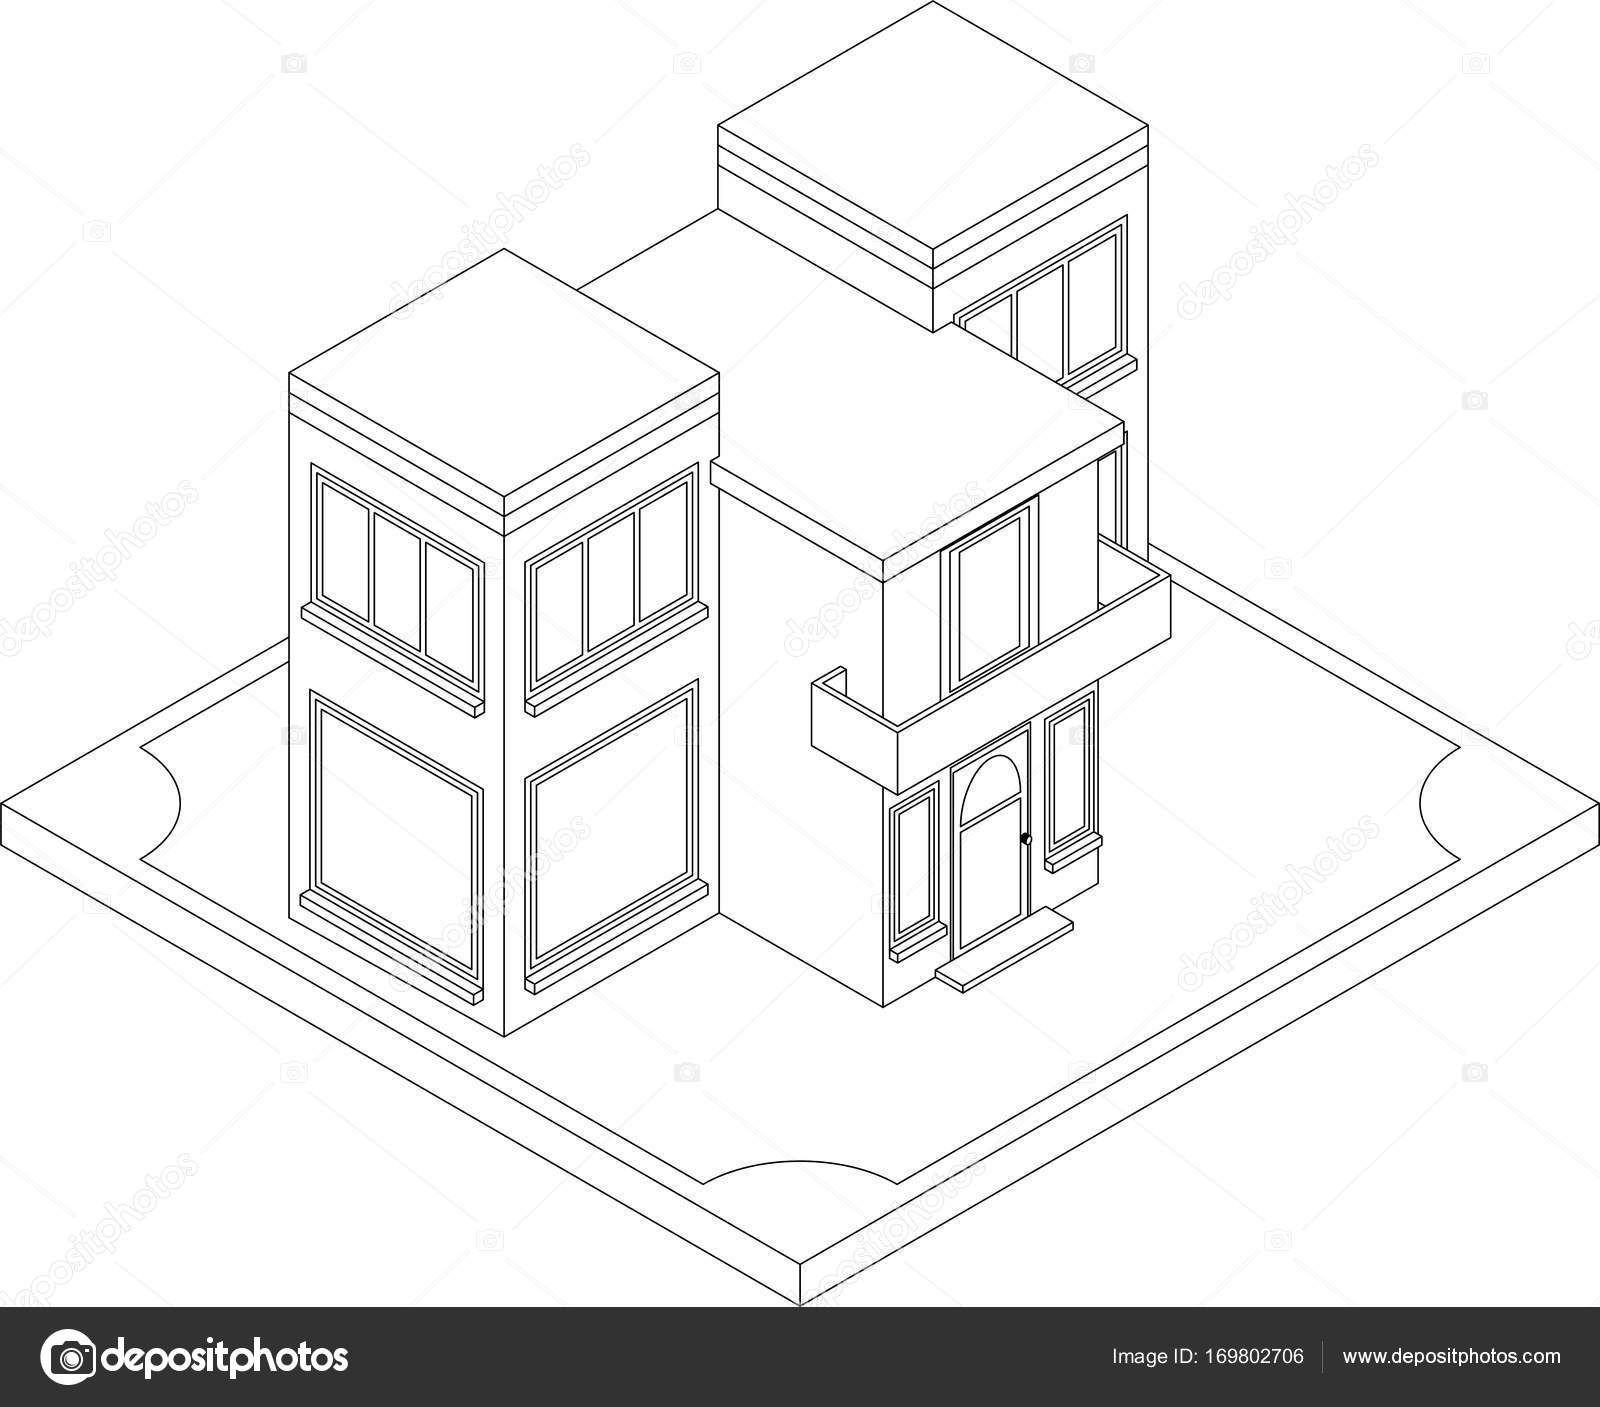 Contour of isometric house — Stock Vector © Sergeymarkov #169802706